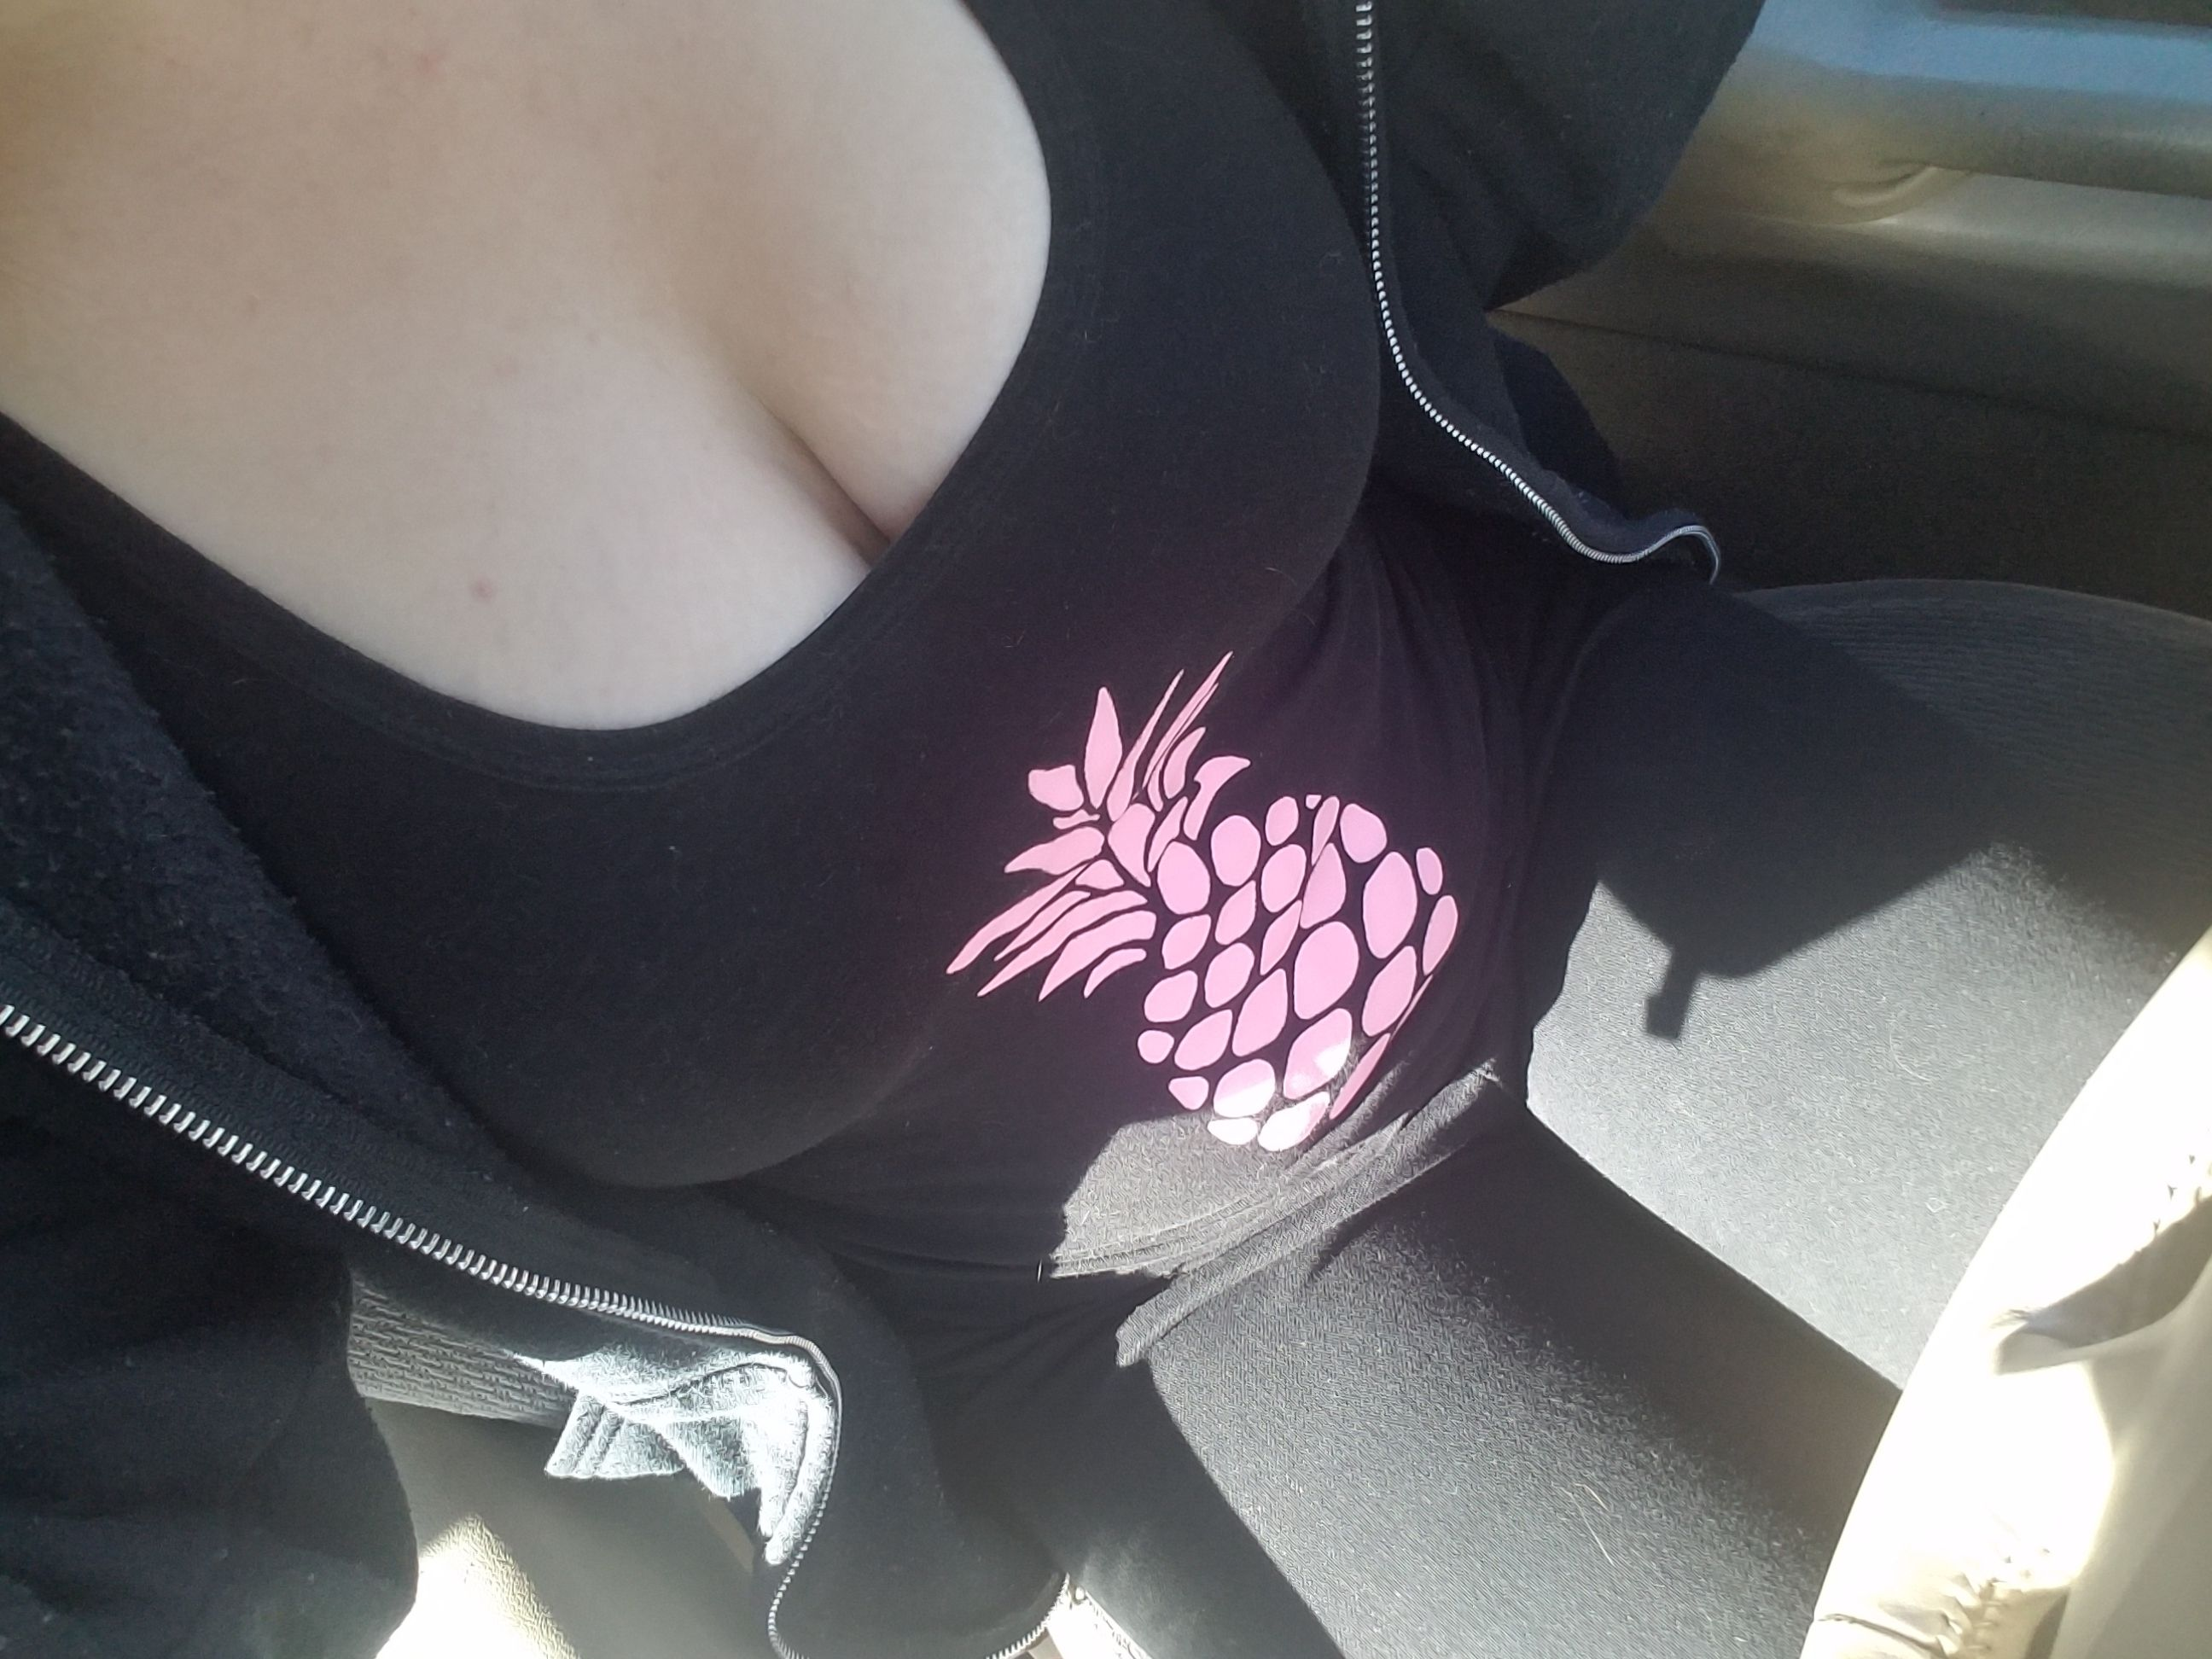 Sometimes you just feel like wearing all black and a pineapple.